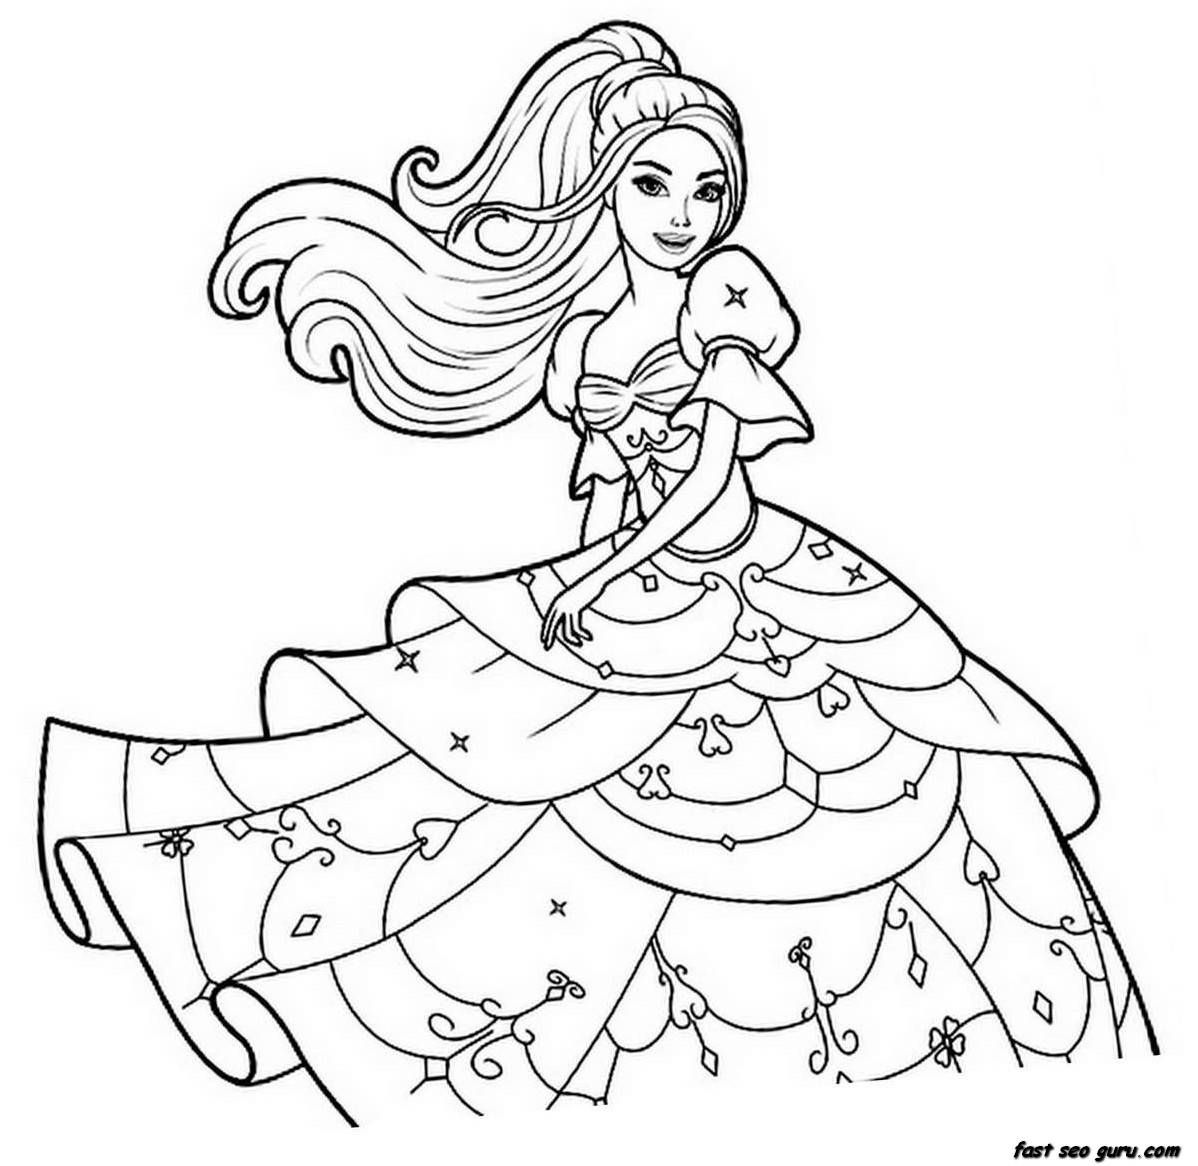 Coloring Pages For Girls Printable Coloring Pages For